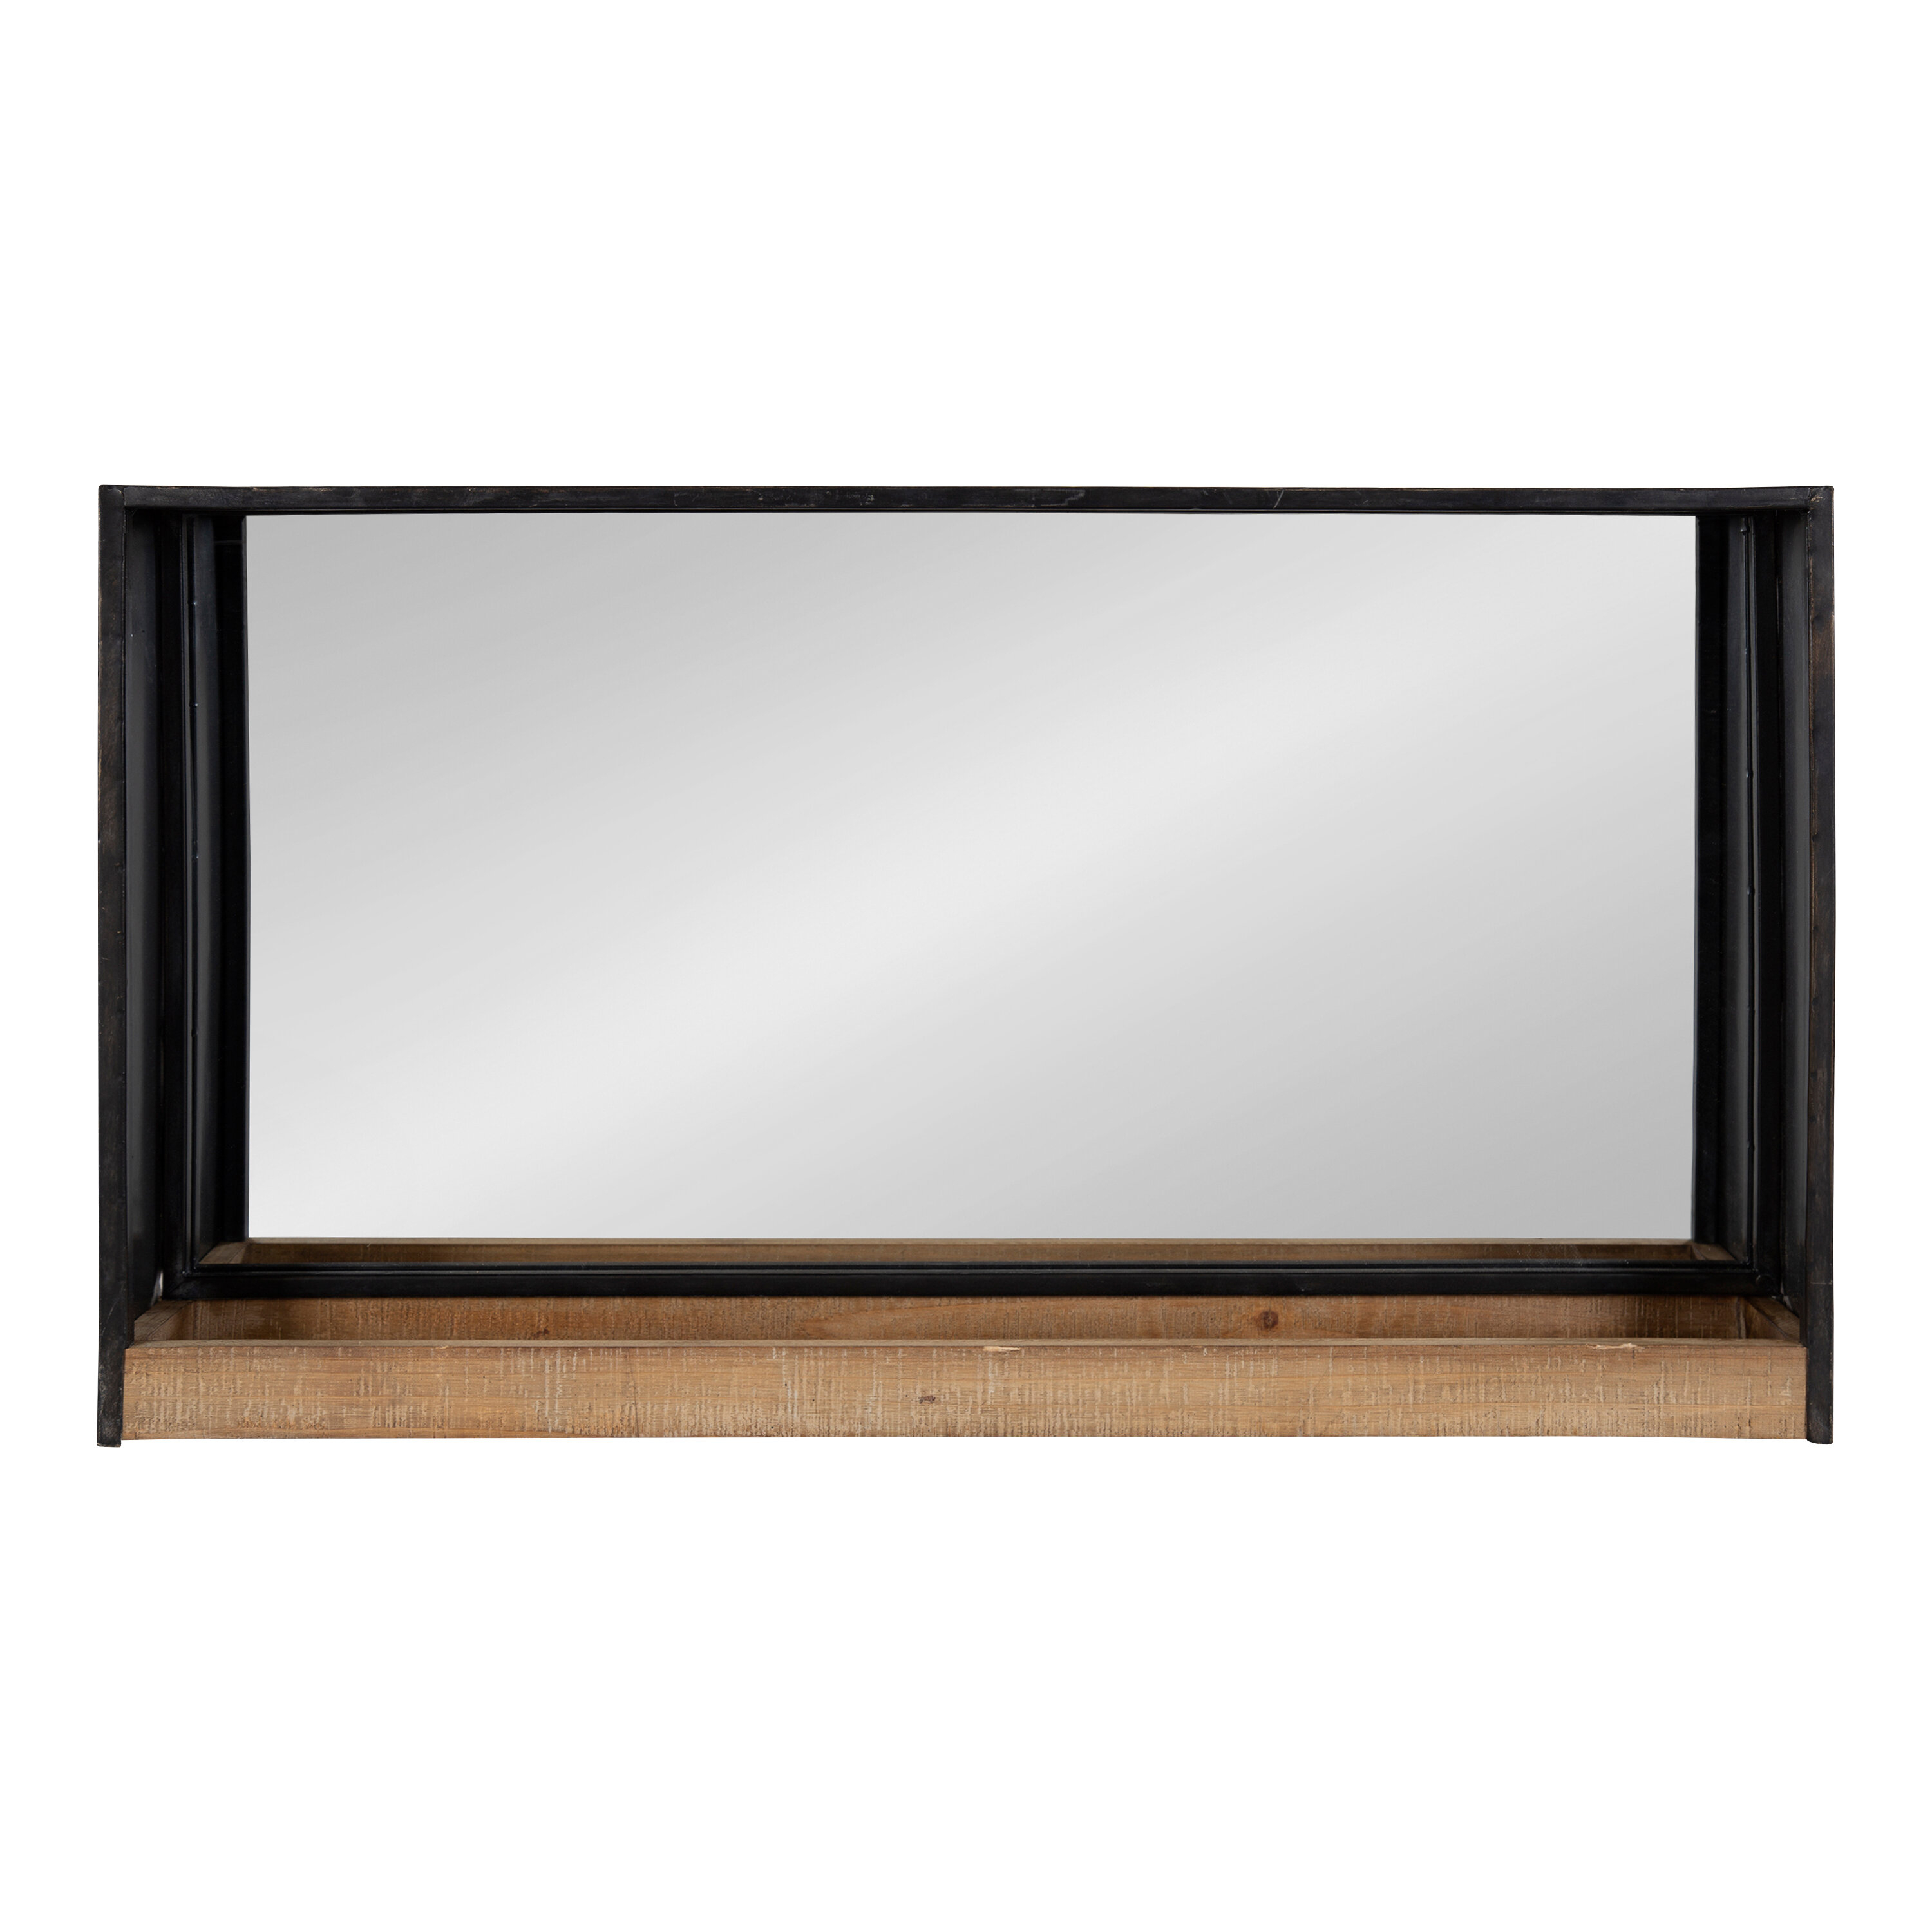 Coelho Casual Modern Beveled With Shelf Accent Mirror Throughout Northcutt Accent Mirrors (Image 3 of 20)